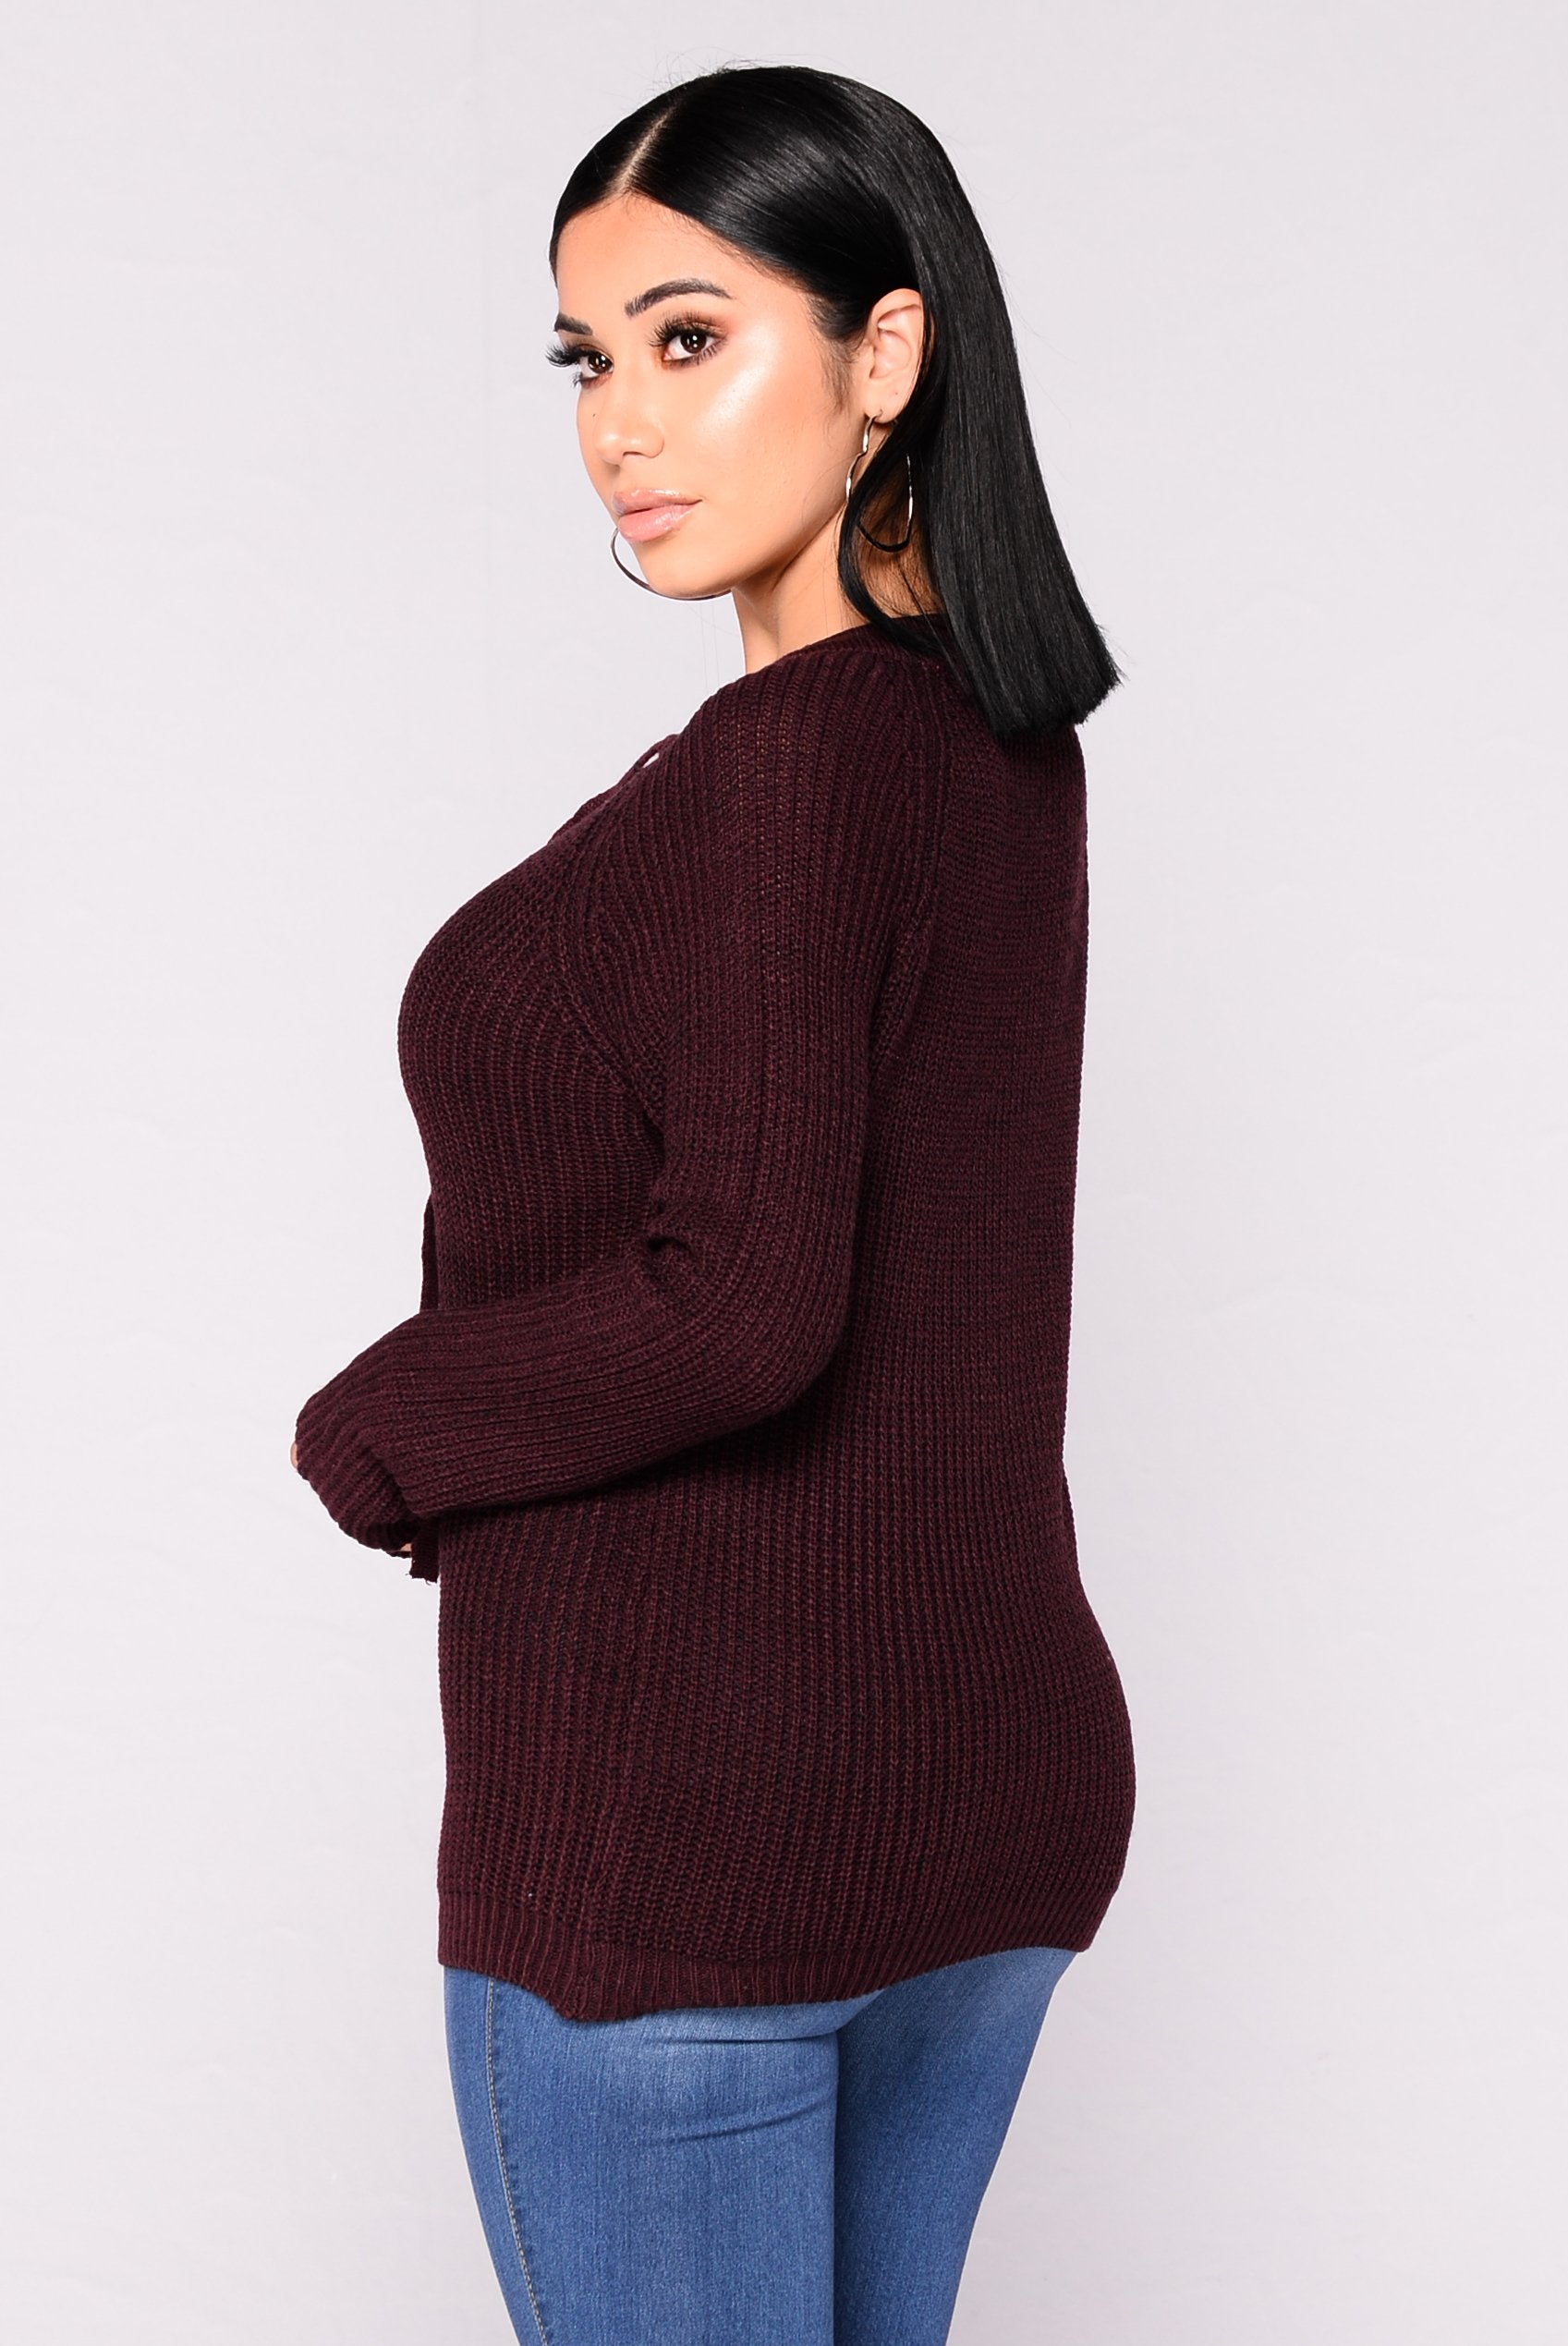 Heiress Sweater